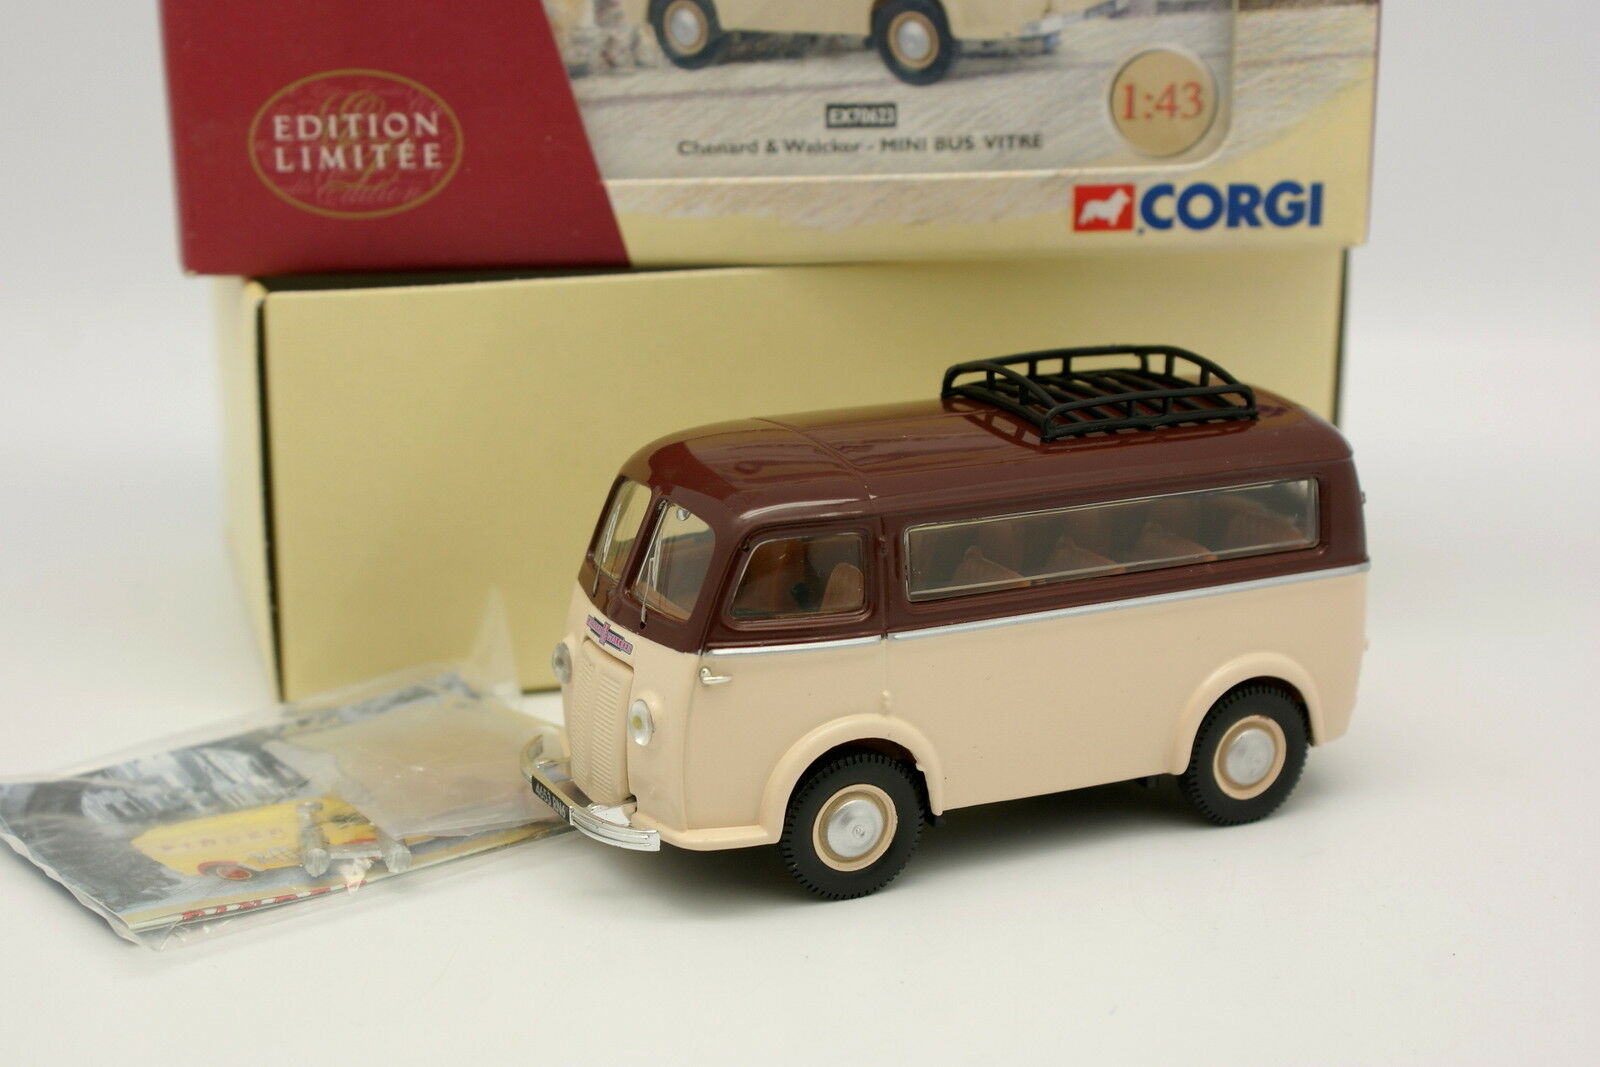 Corgi Legacy 1 43 - Chenard and Walker Mini Bus Glazed